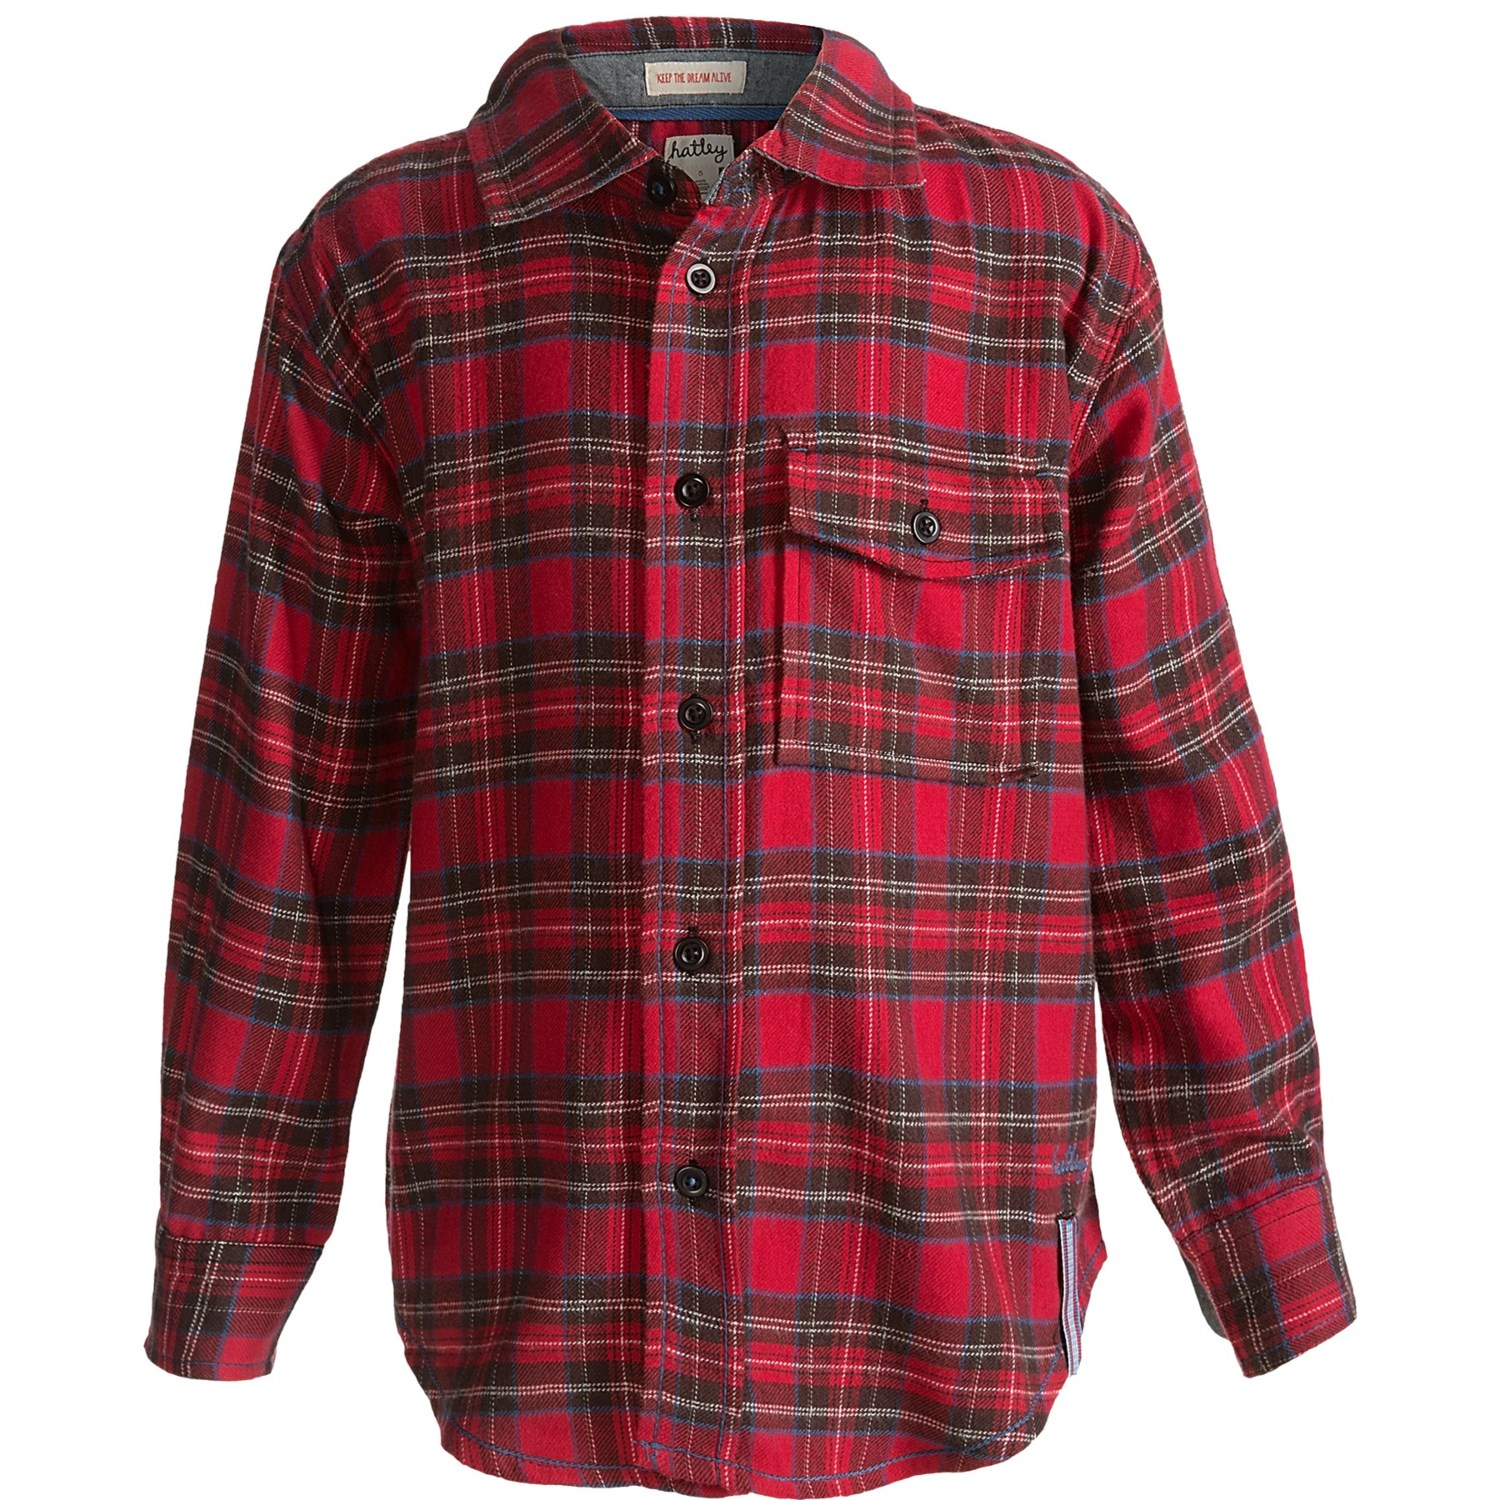 Photos Bild Galeria Plaid Shirt